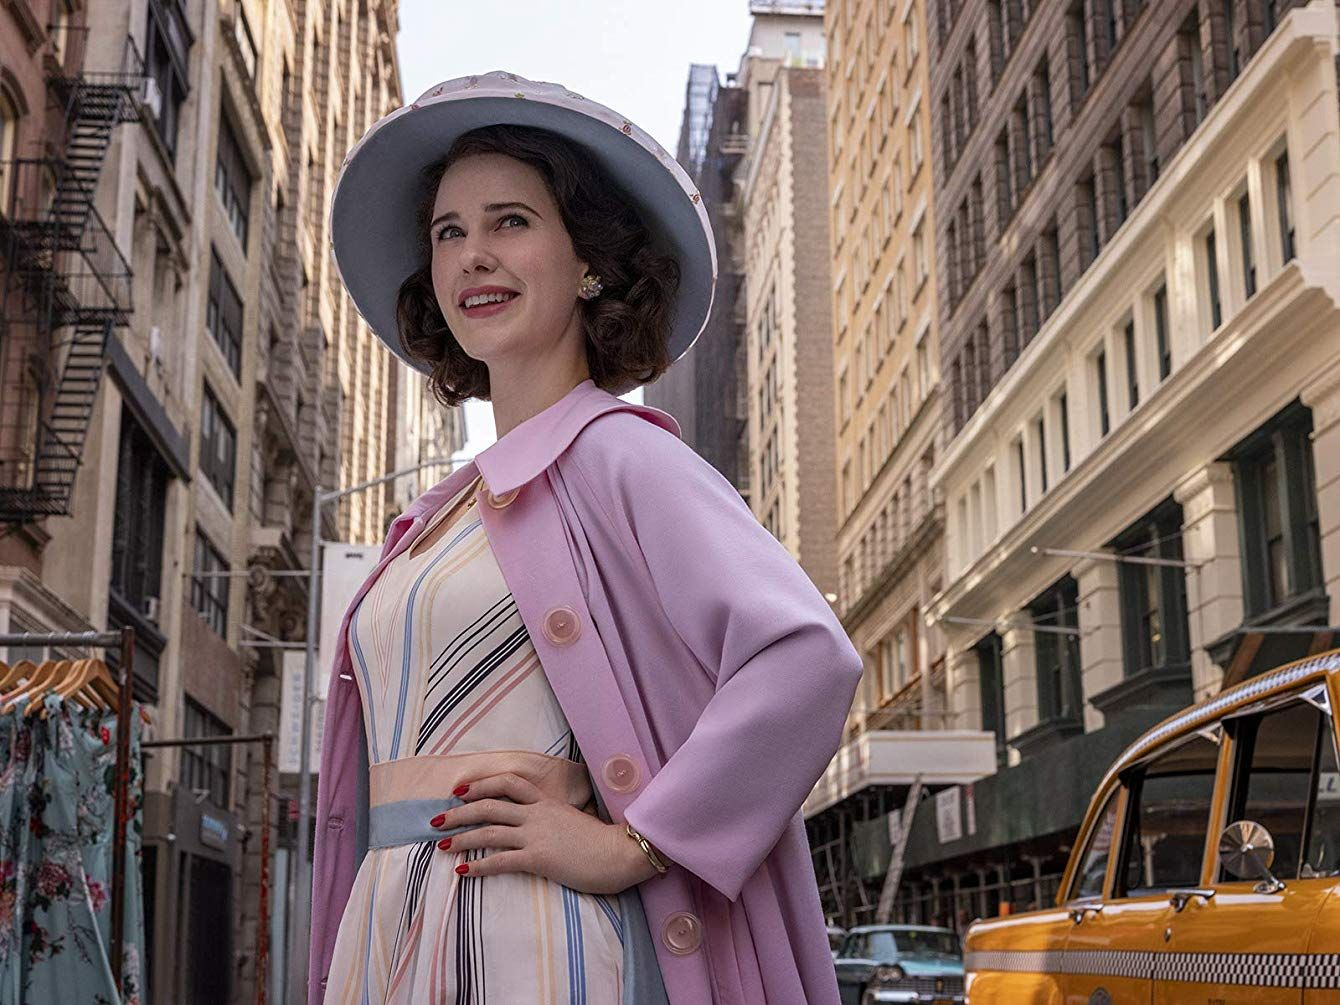 , Marvelous Mrs Maisel Season 4 Release Date, Cast, Plot, Trailer And What's New Update?